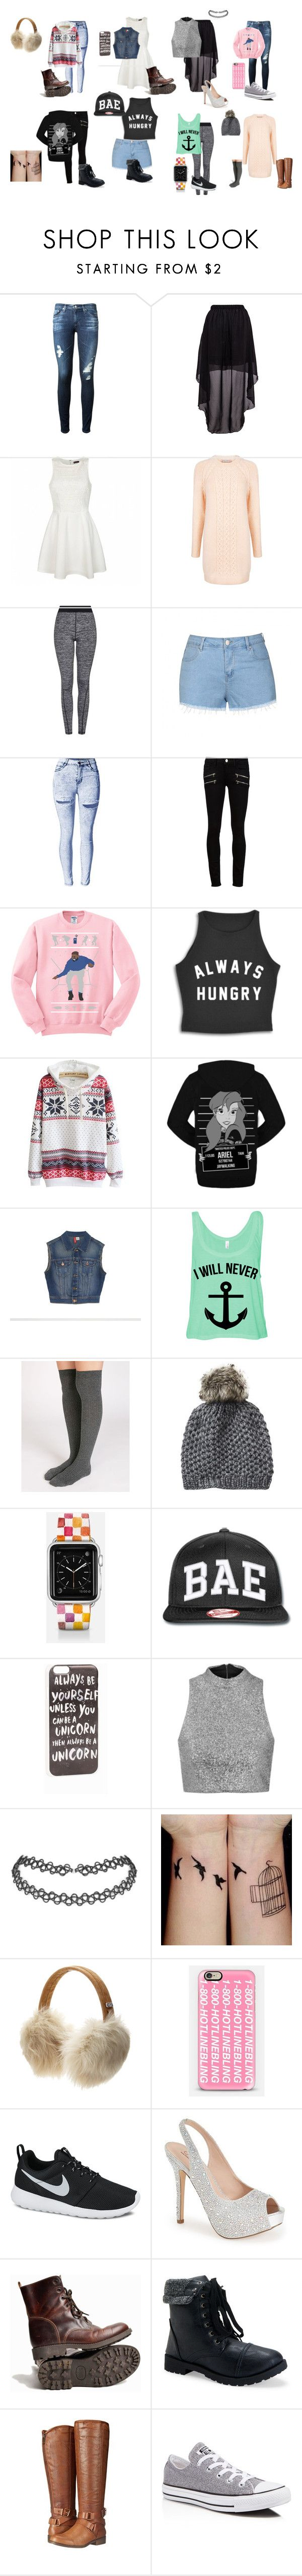 """""""cute outfits"""" by malaina-819 on Polyvore featuring AG Adriano Goldschmied, Ally Fashion, Paul & Joe Sister, Topshop, Paige Denim, Disney, Oysho, Vincent Pradier, Casetify and JFR"""